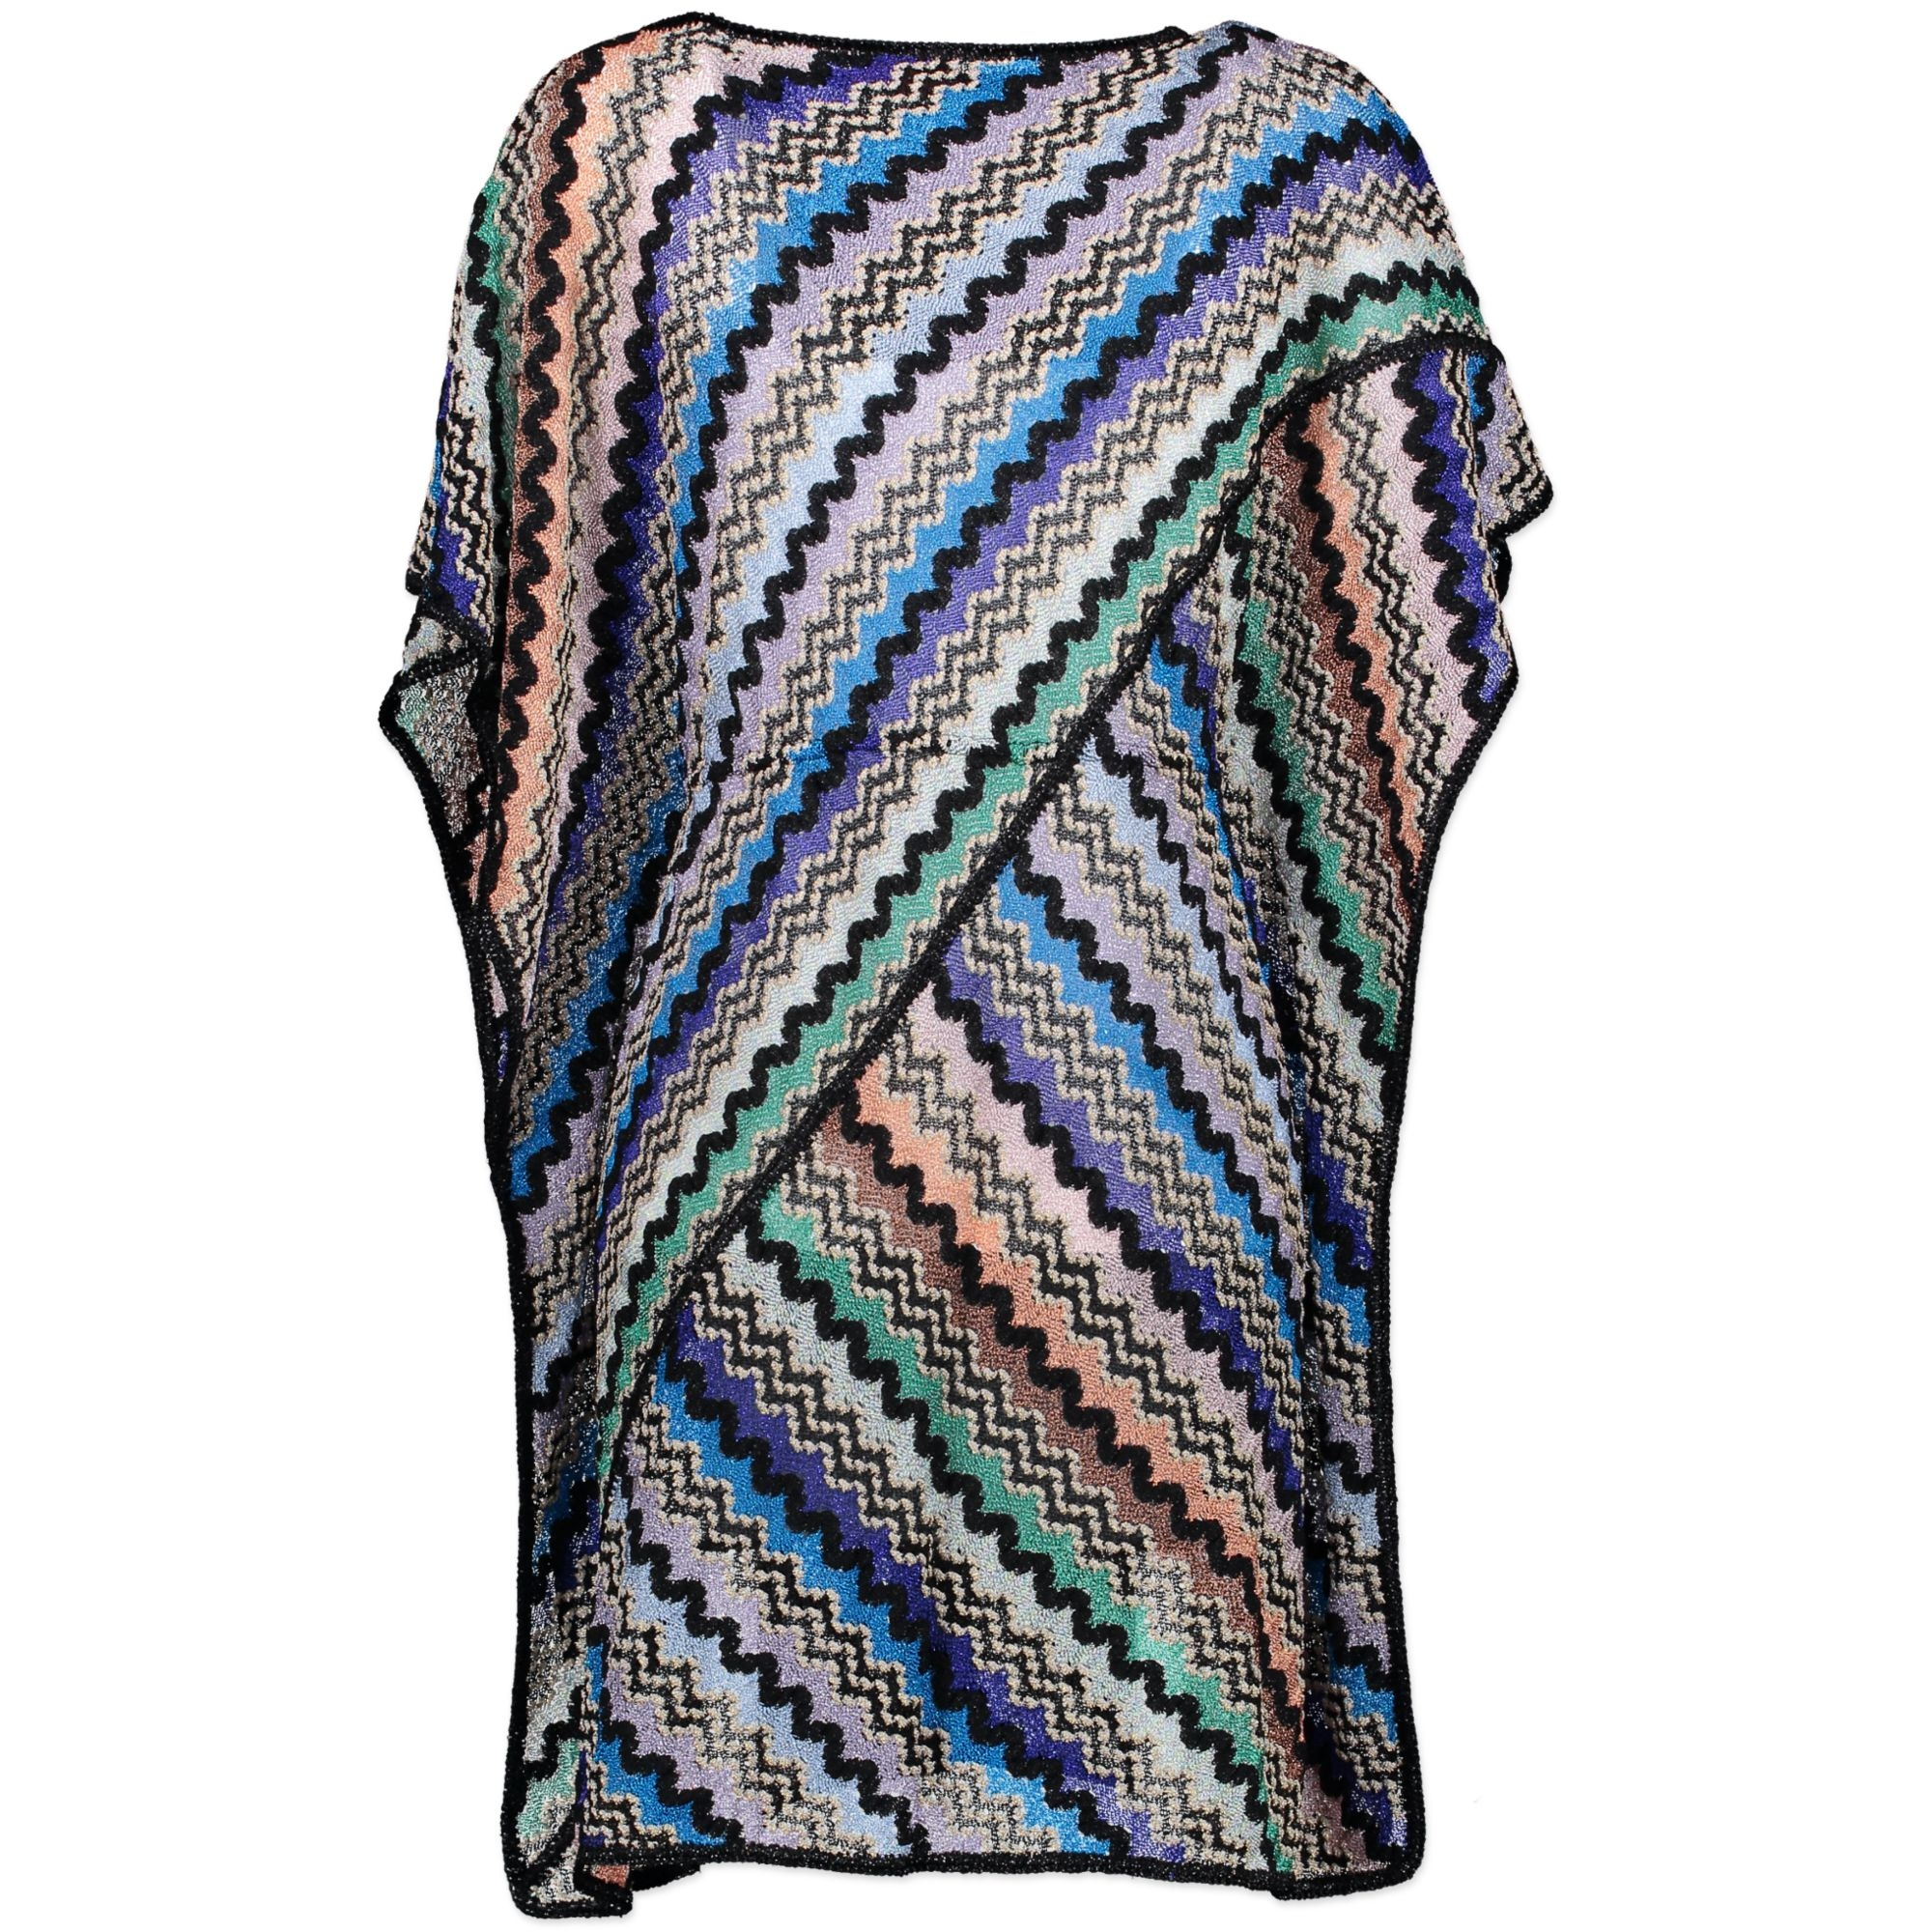 e9b9f0ad96a8c1 ... buy authentic secondhand Missoni Mare Beach Cover-up Tunic at the right  price at Labellov